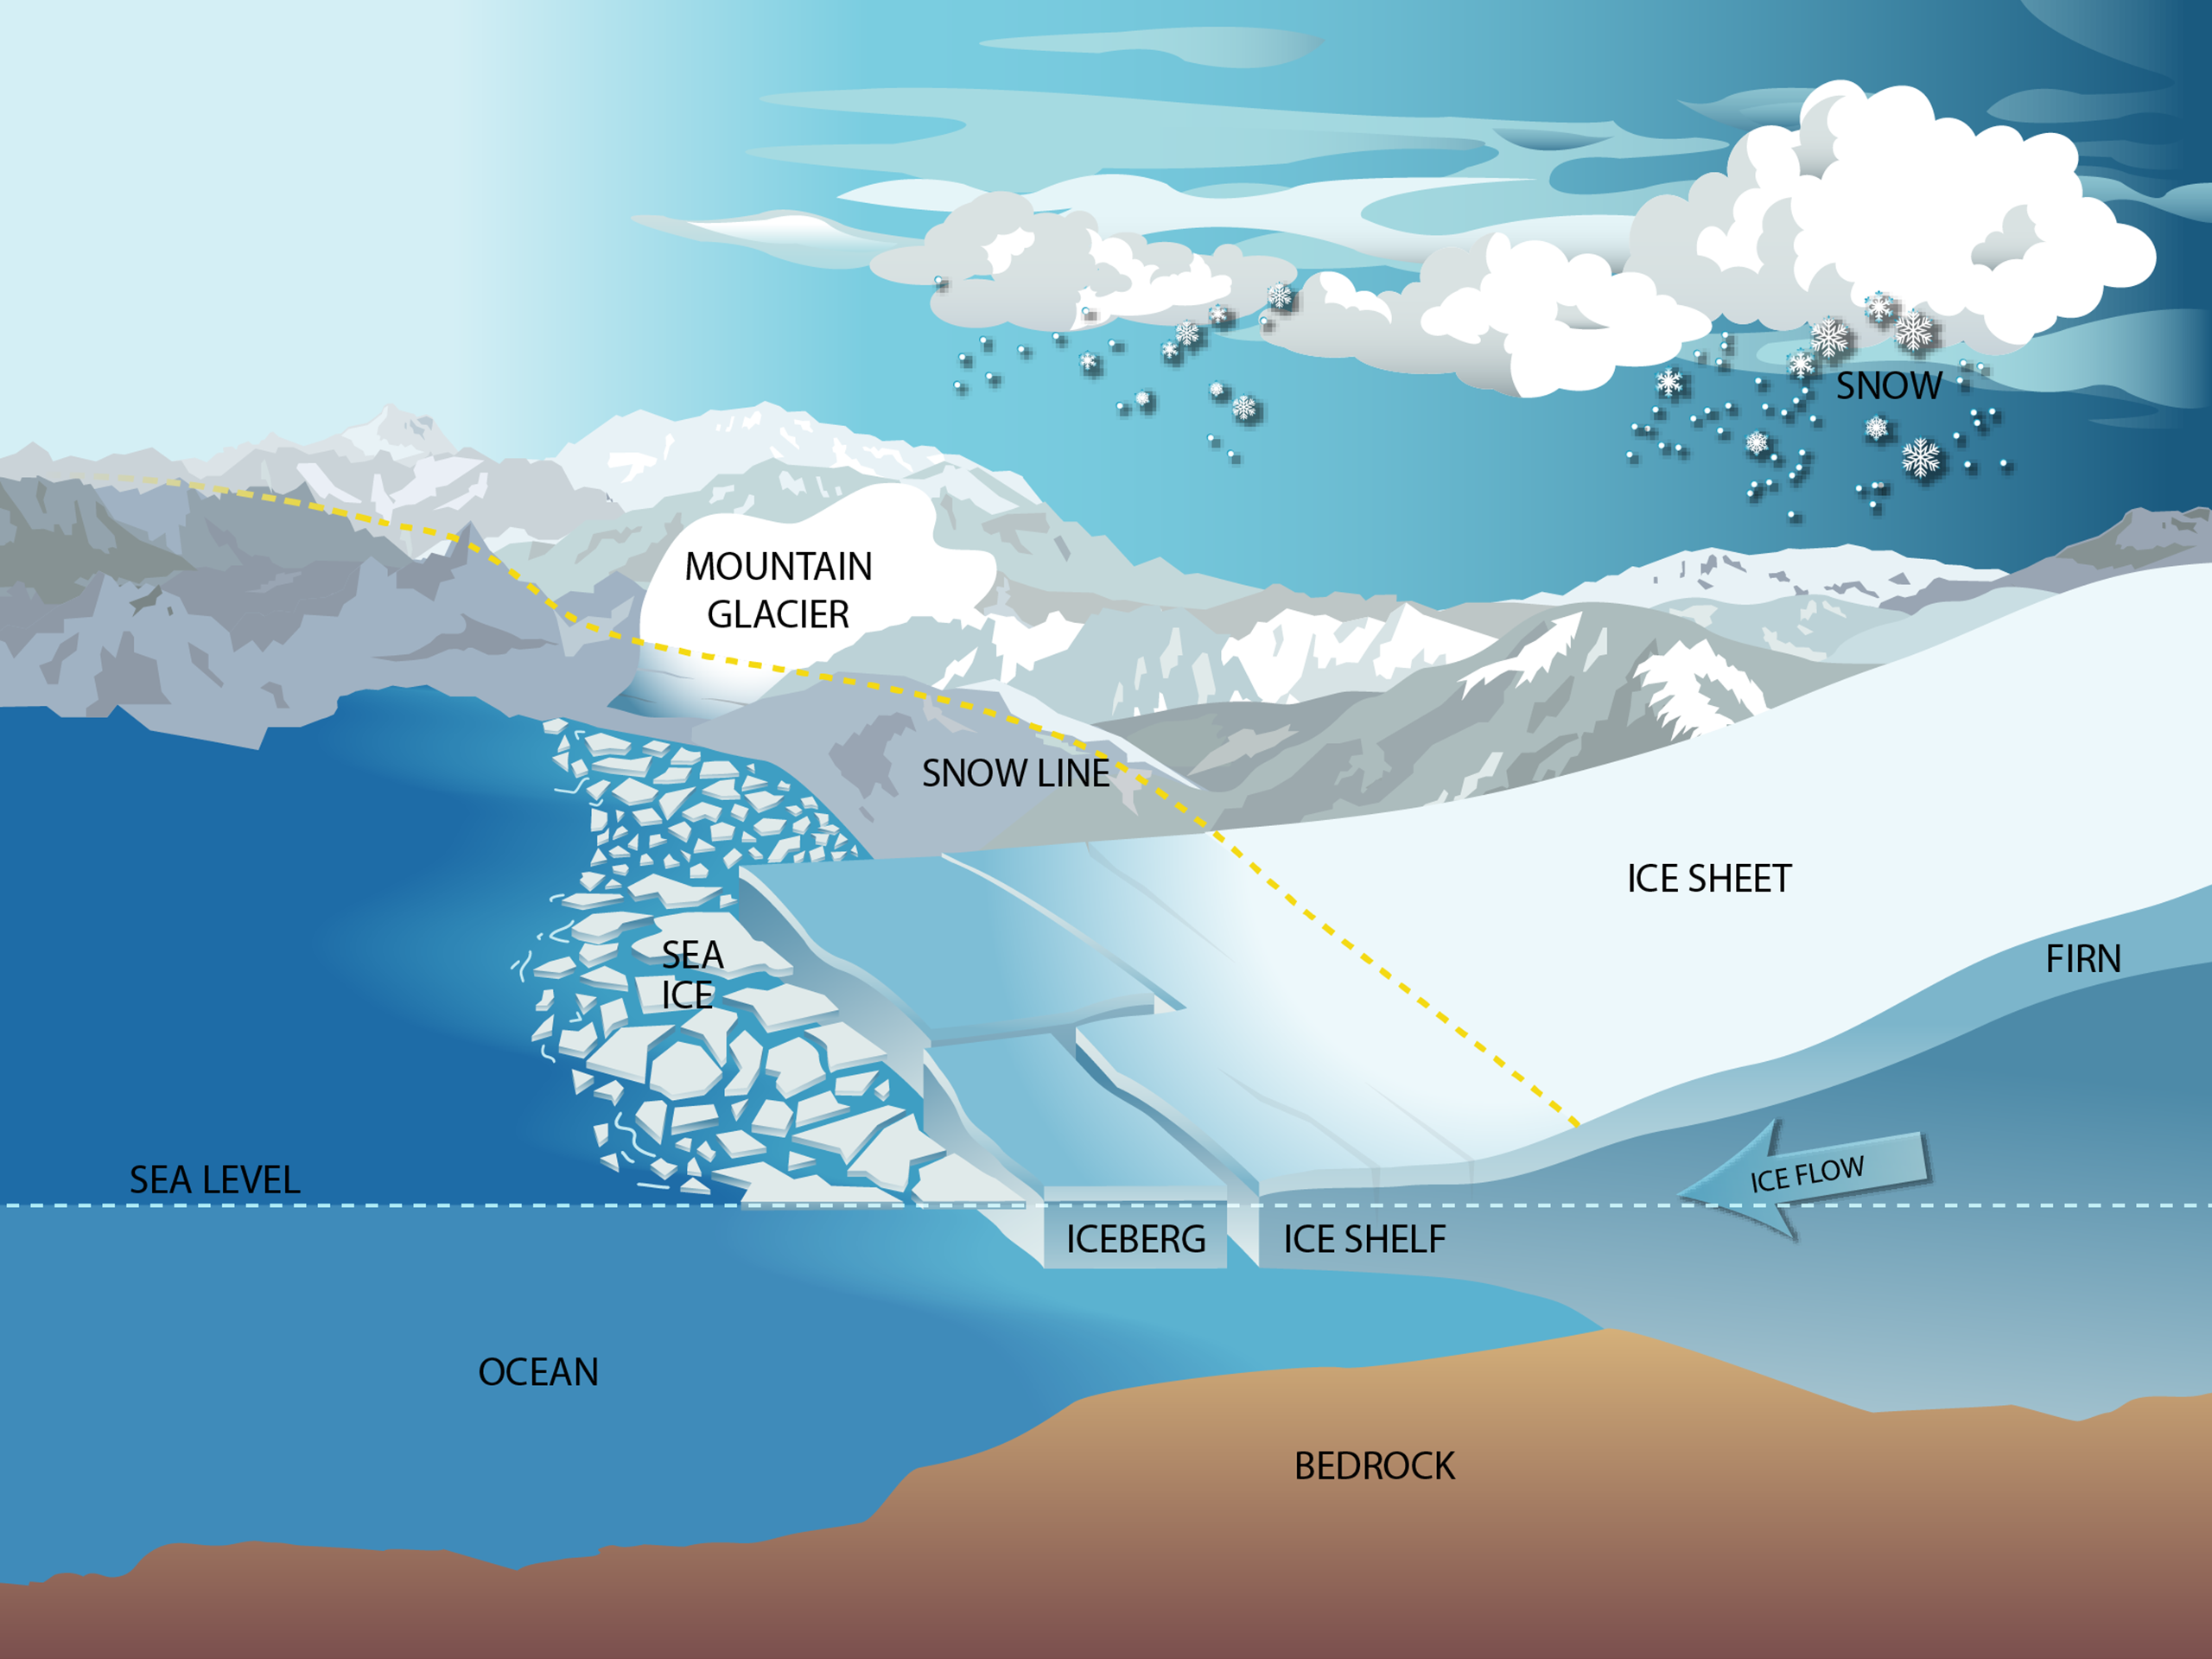 Ice processes overview graphic